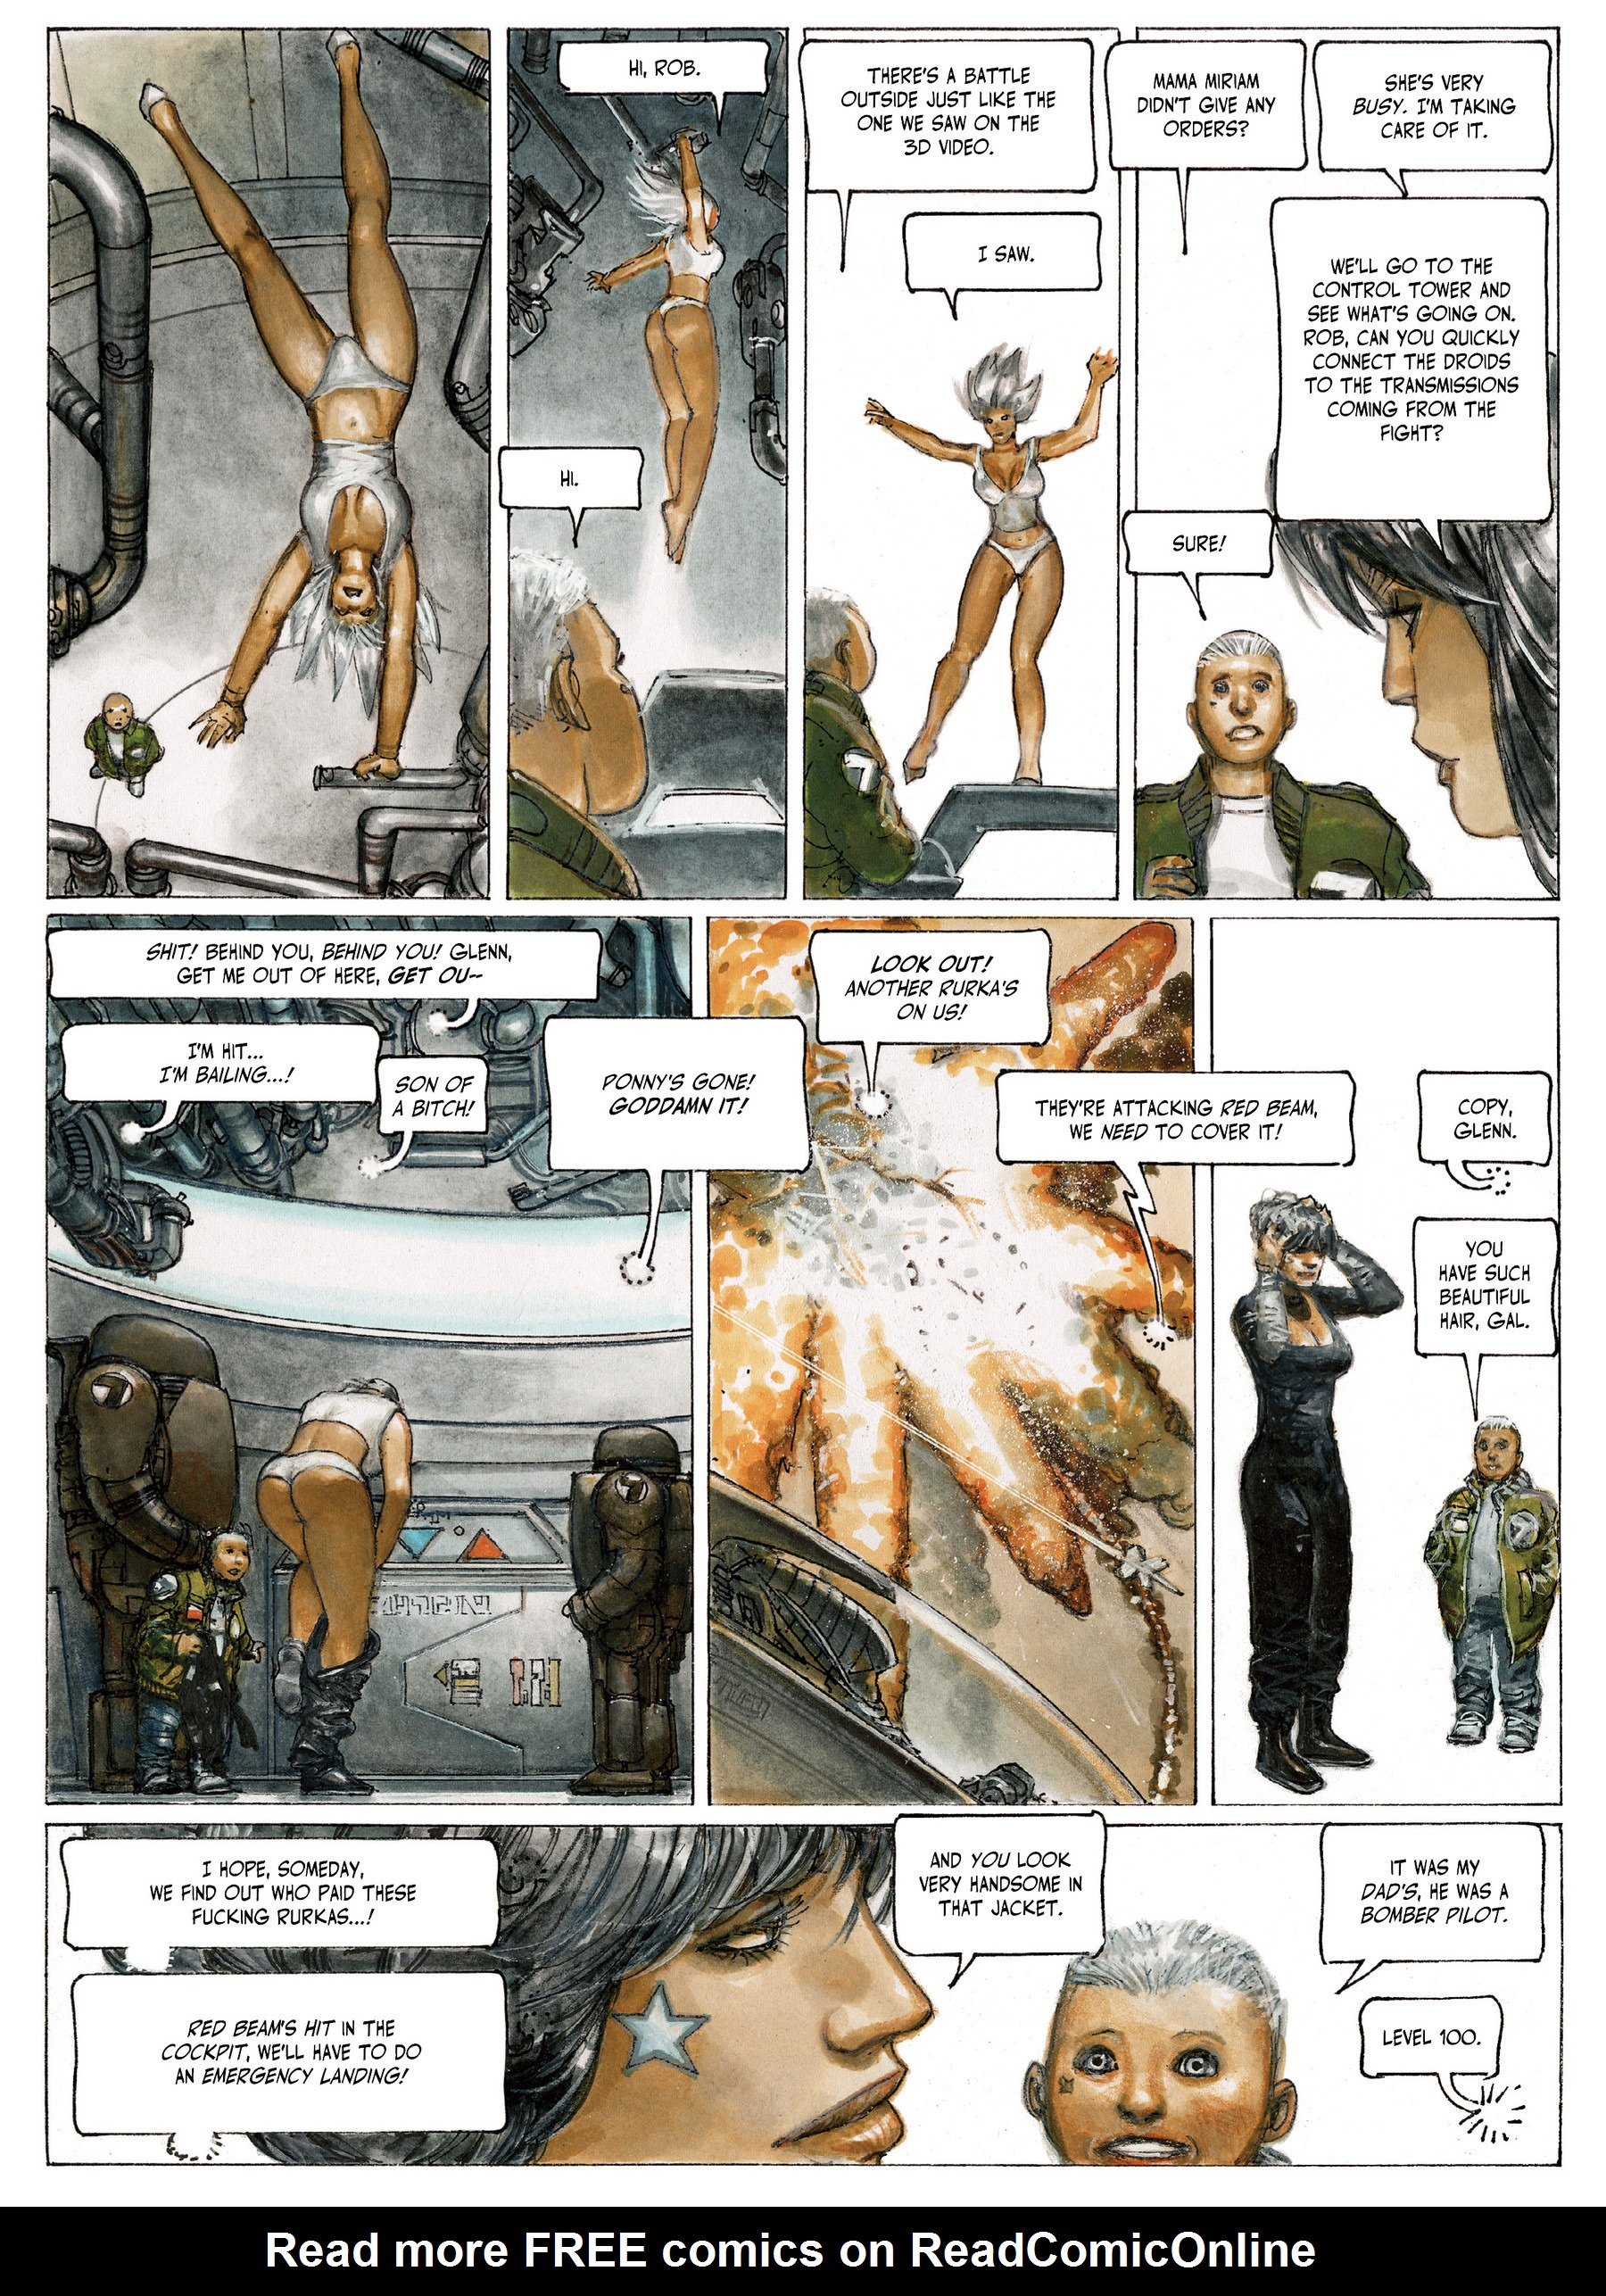 Read online The Fourth Power comic -  Issue #4 - 38